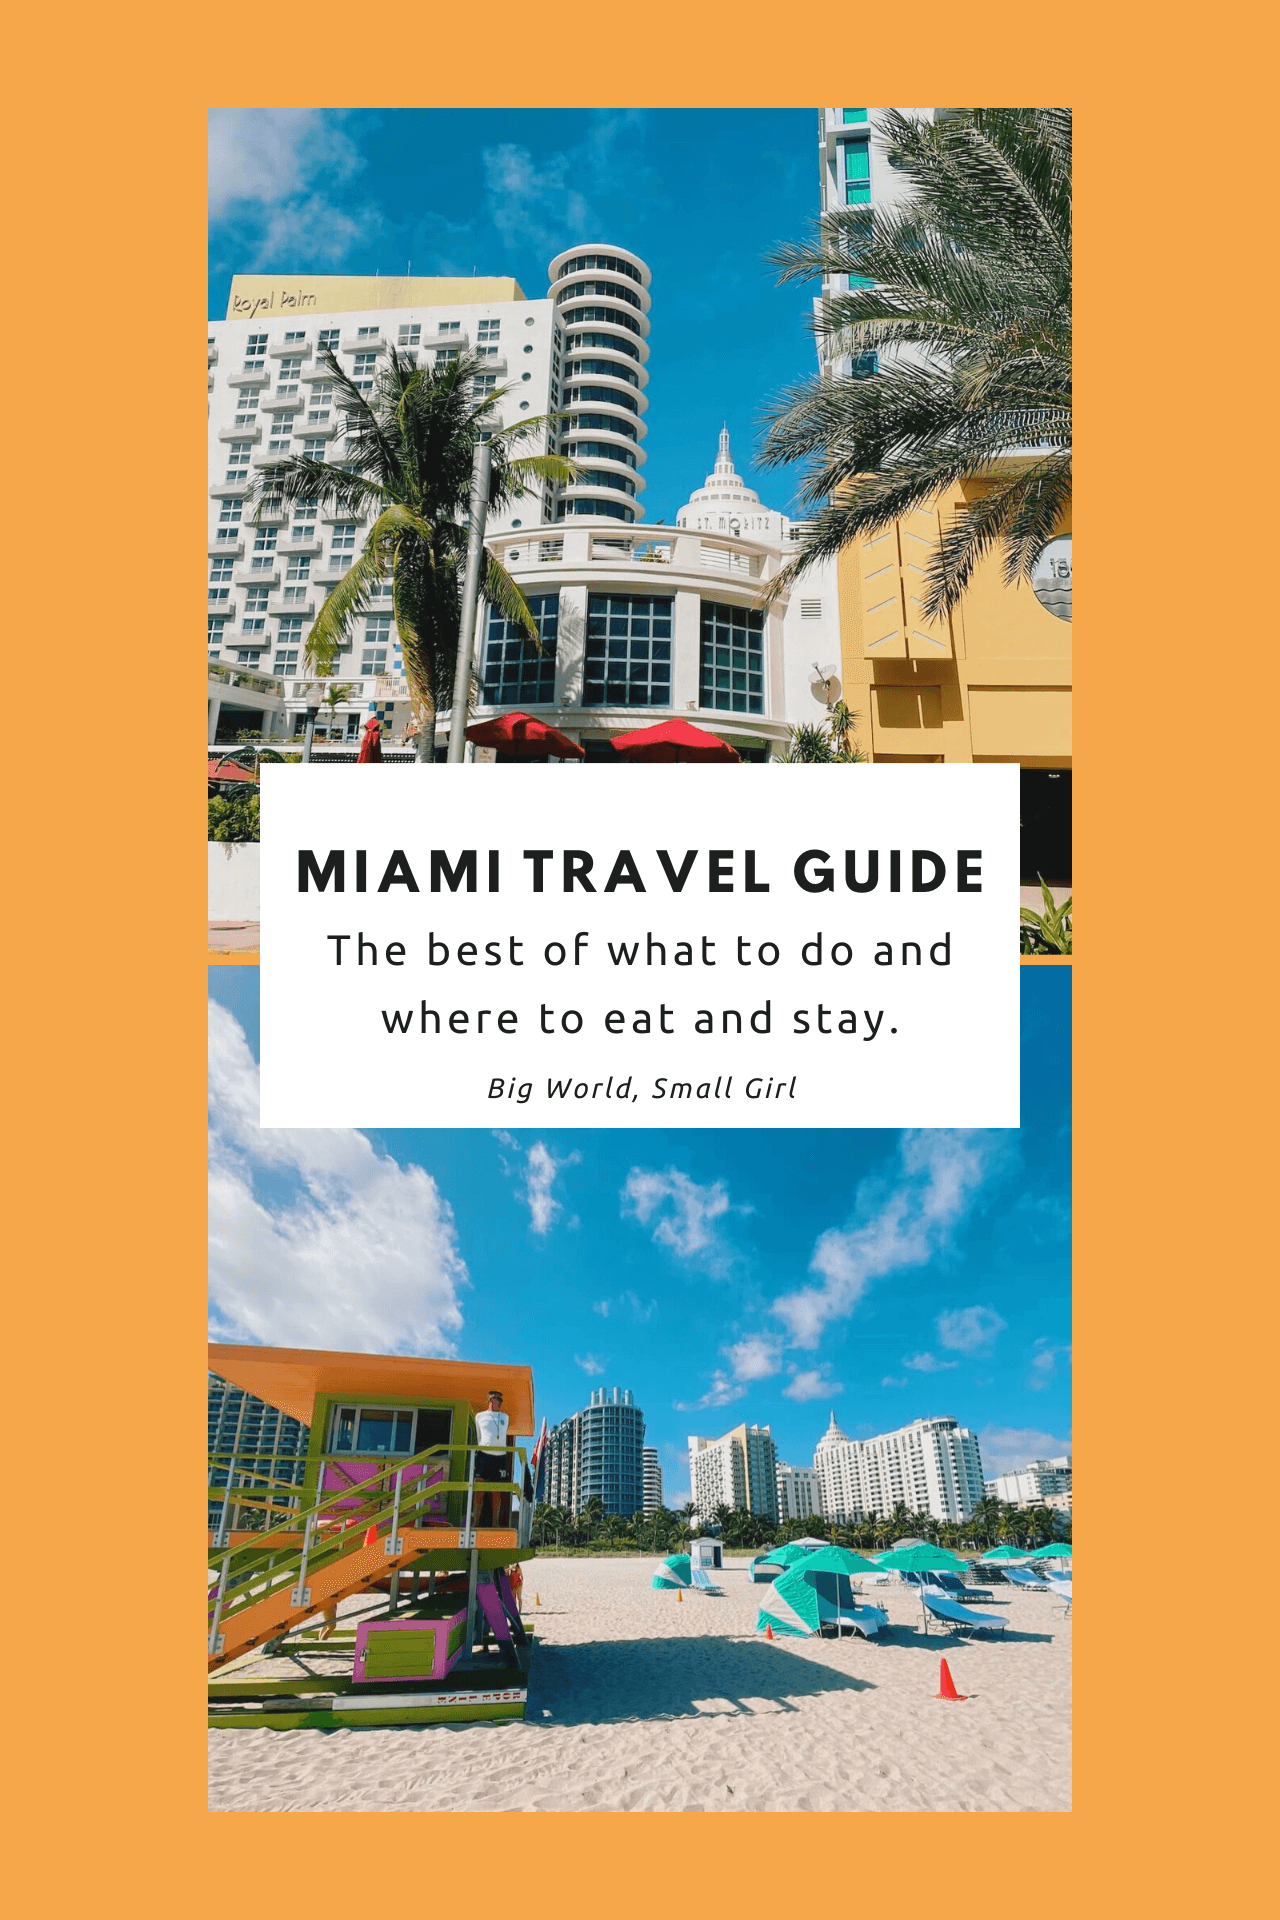 Top 5 Things To Do In Miami Miami Travel Guide In 2020 Miami Travel Guide Miami Travel Visit Miami Beach